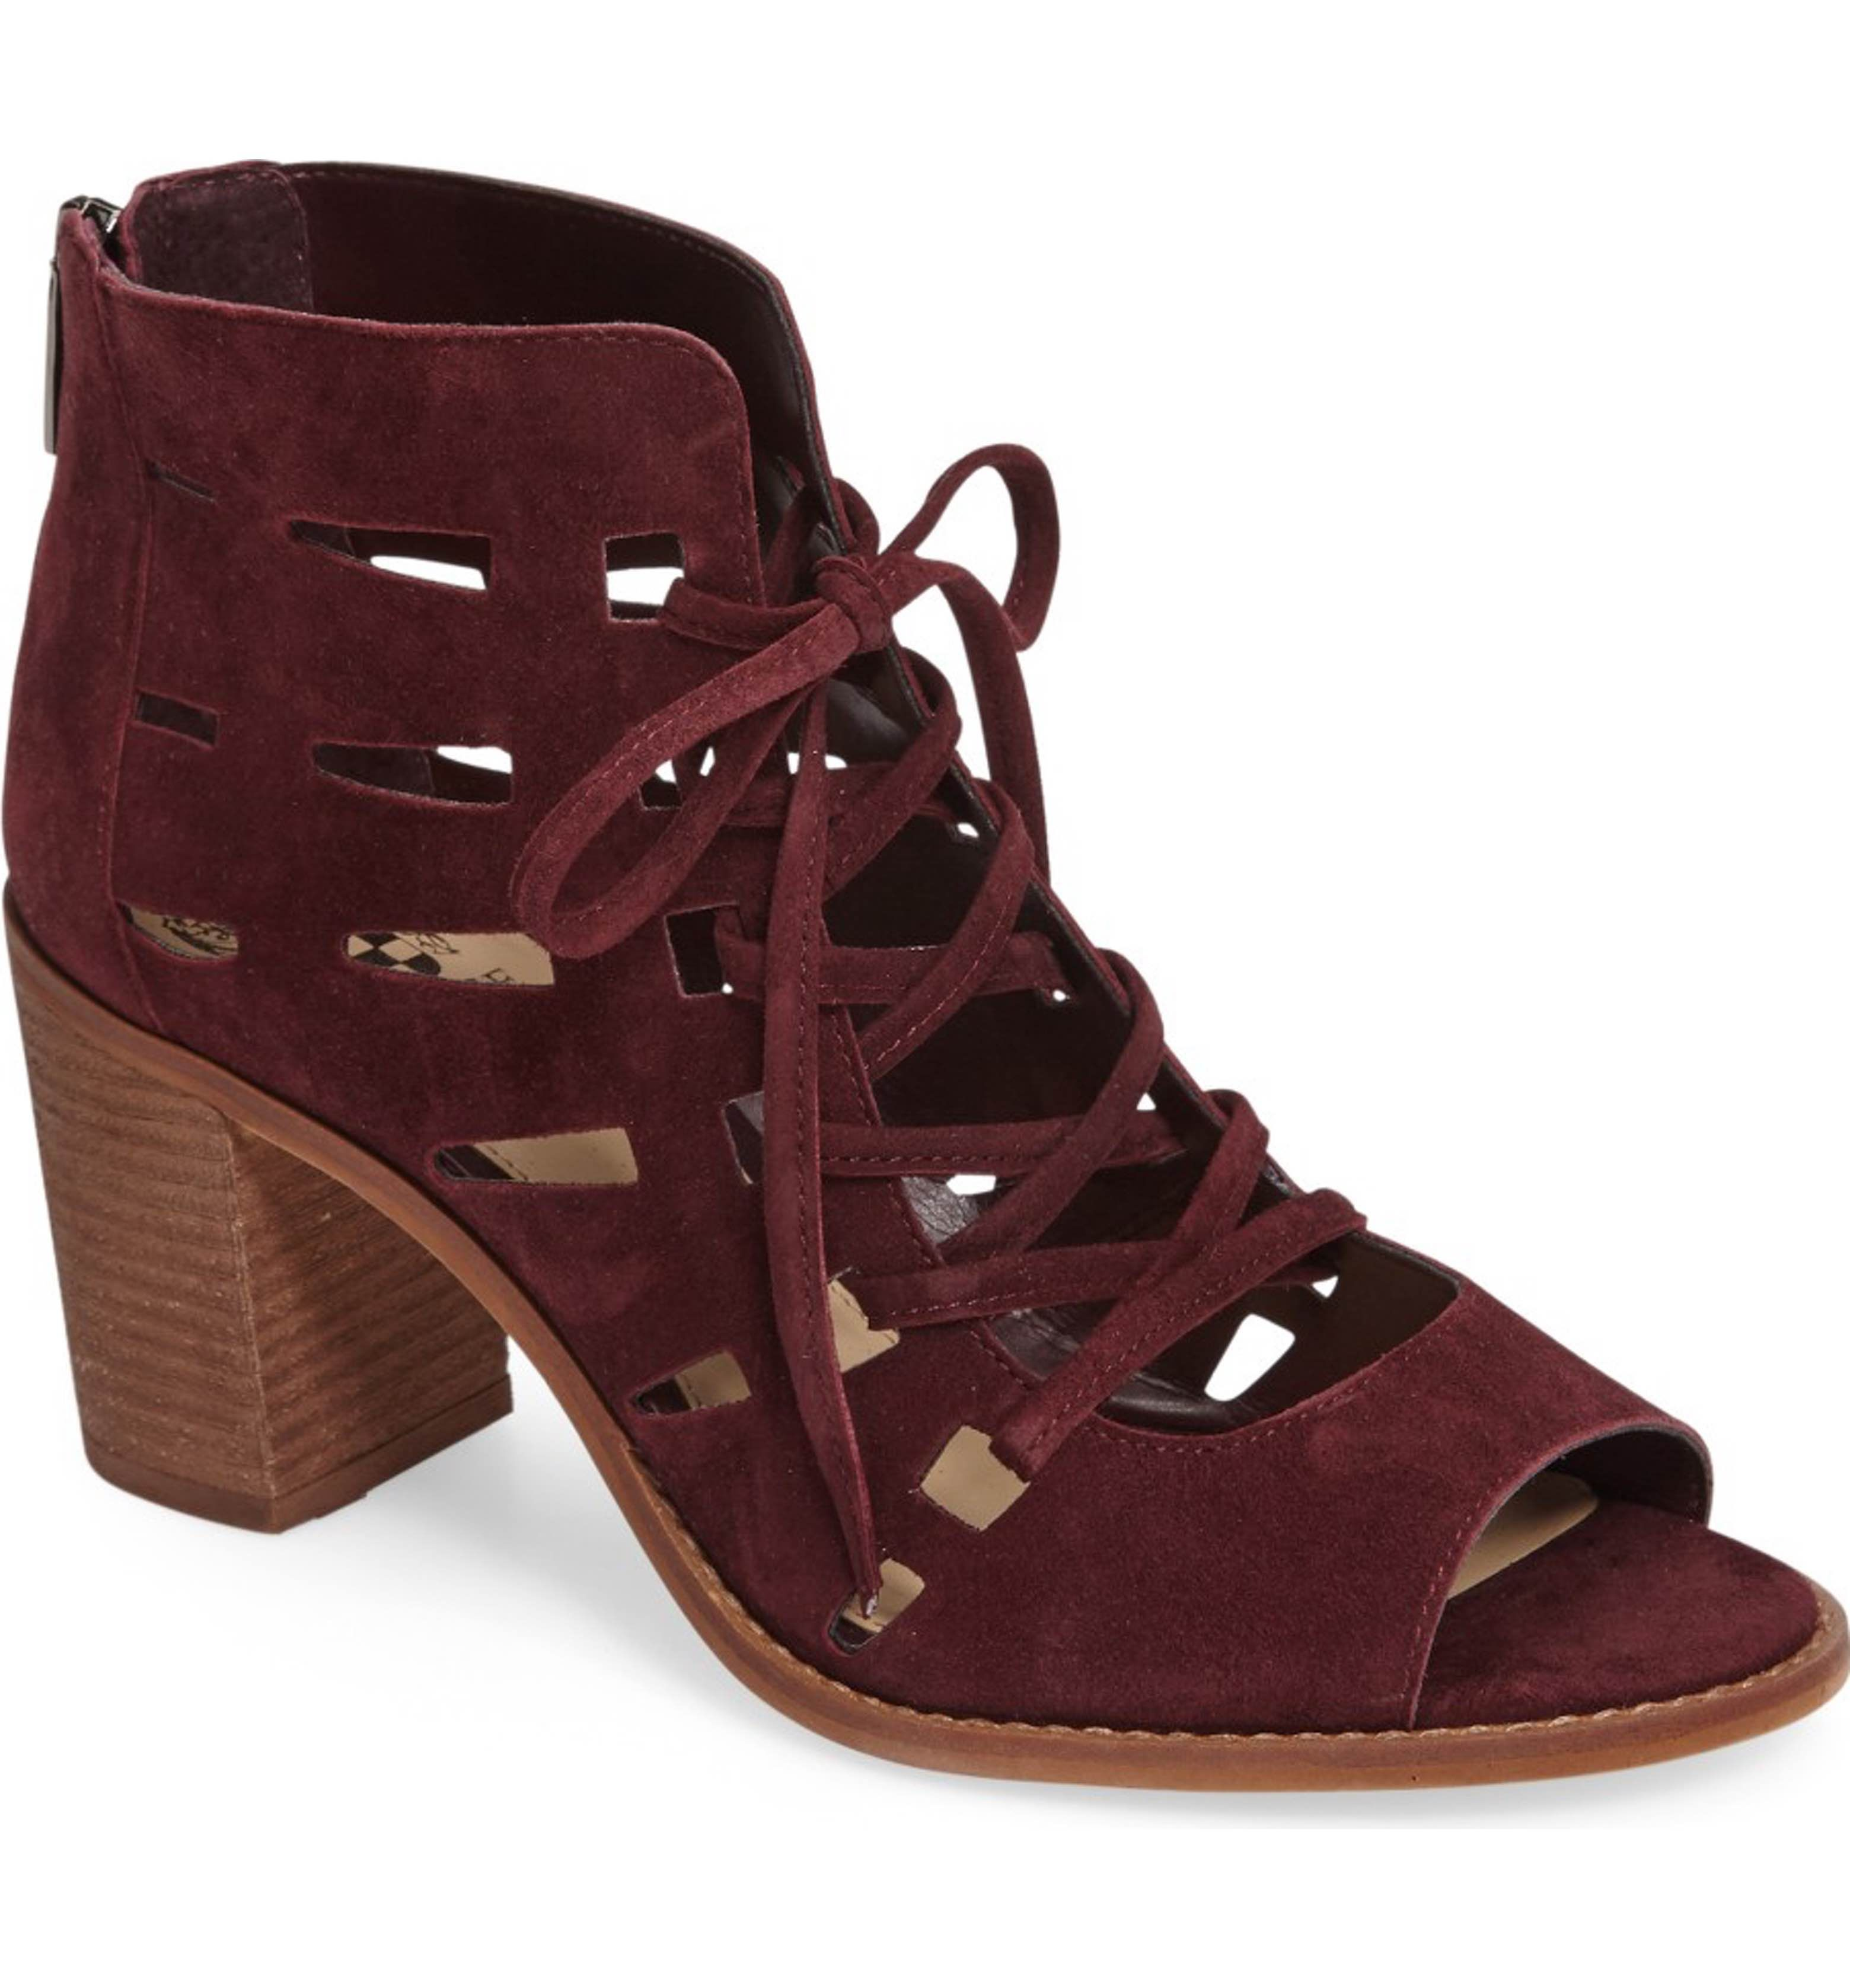 Vince Camuto Sandals for Women | Nordstrom